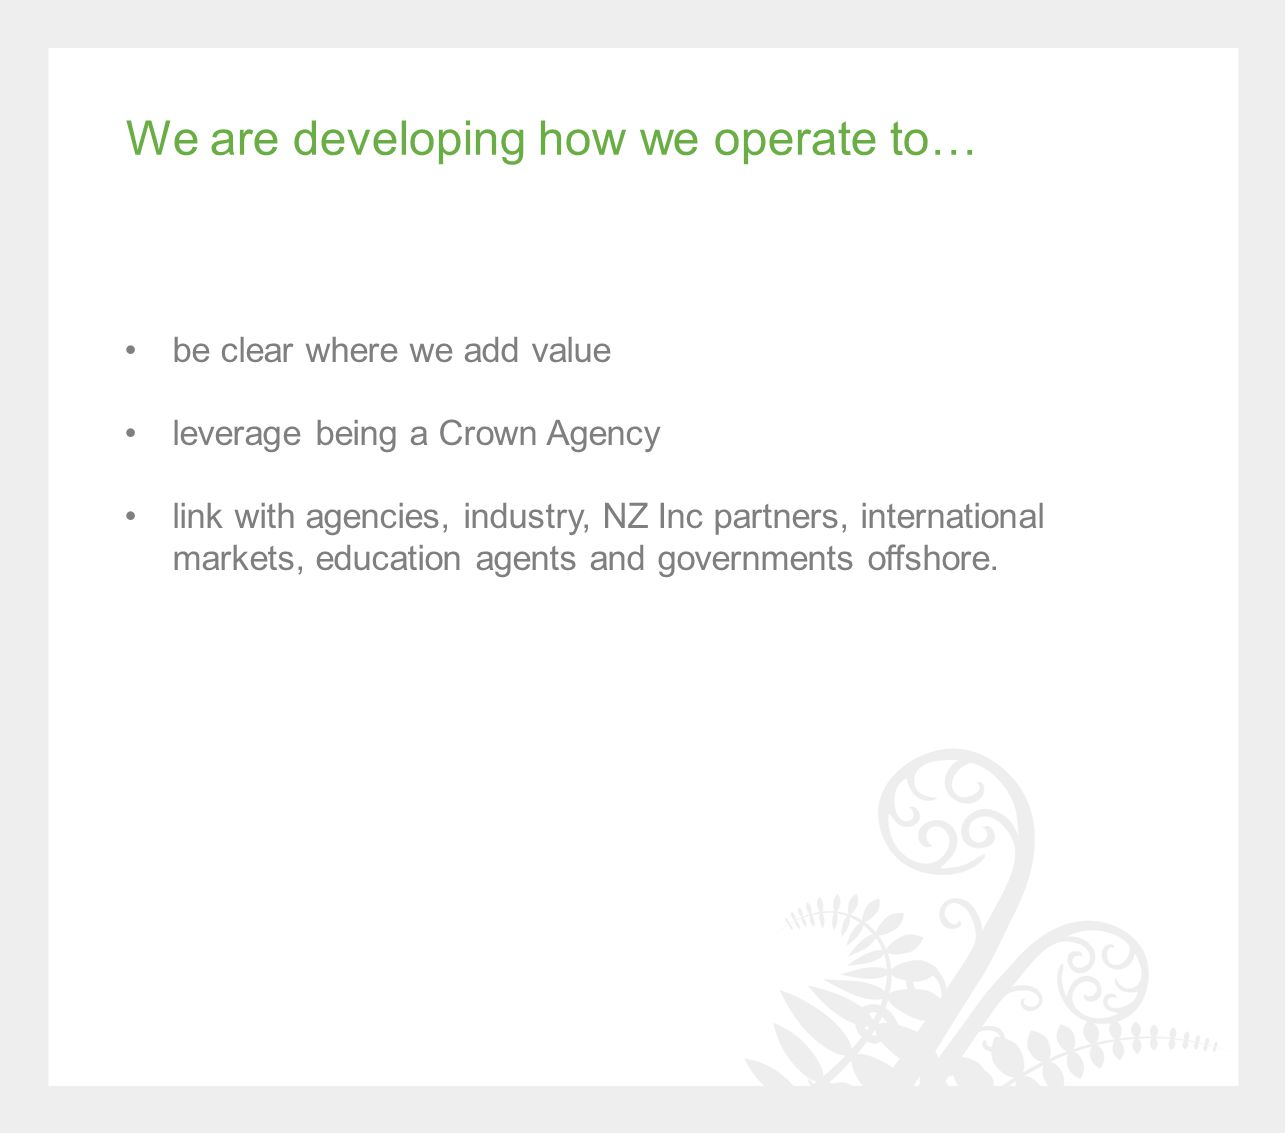 We are developing how we operate to… be clear where we add value leverage being a Crown Agency link with agencies, industry, NZ Inc partners, international markets, education agents and governments offshore.